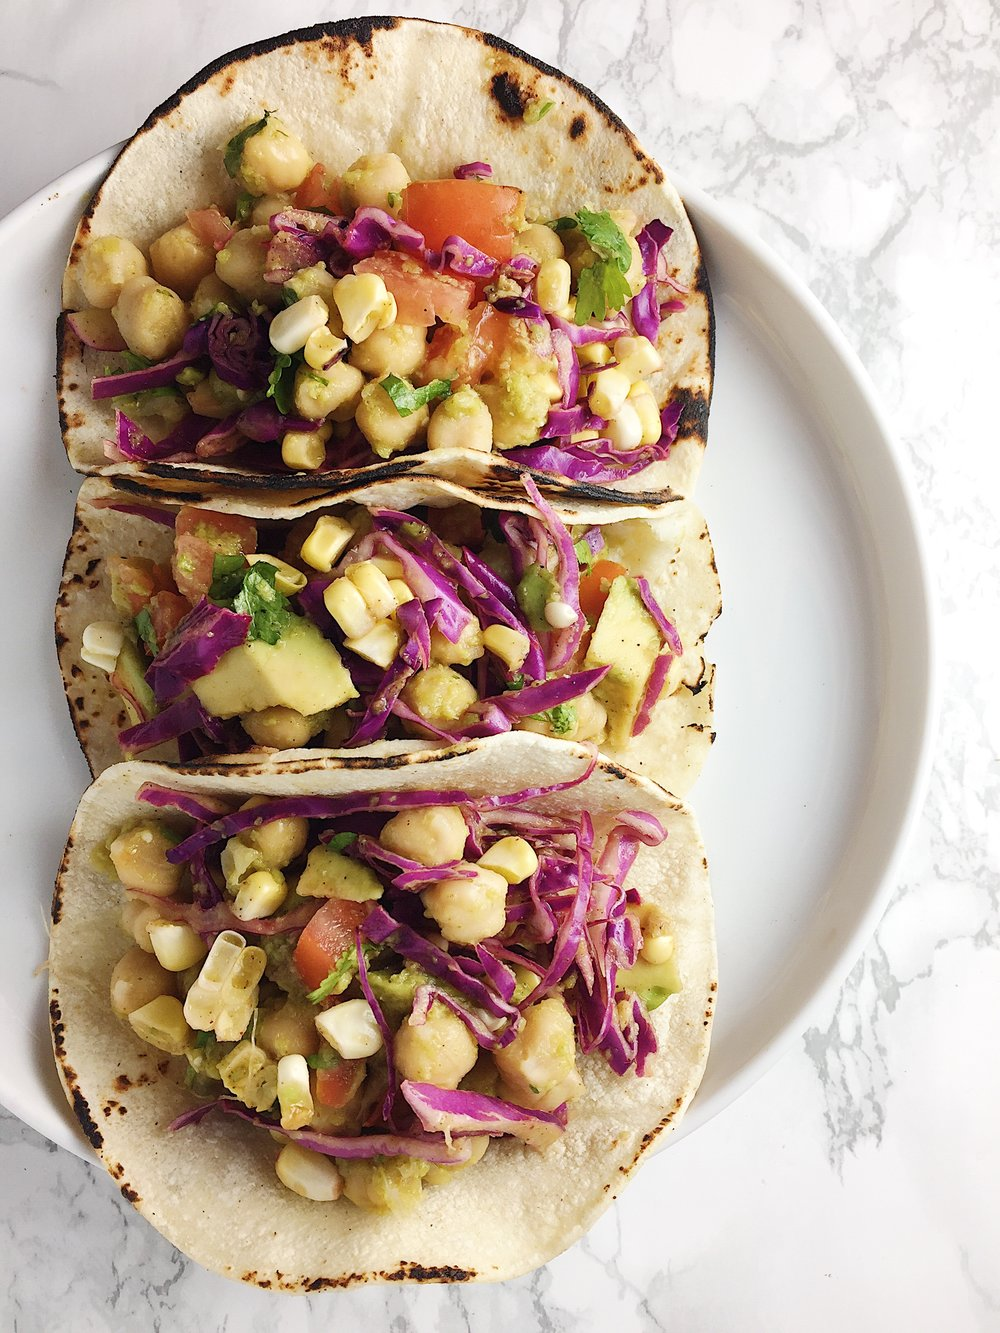 Chickpea tacos for me